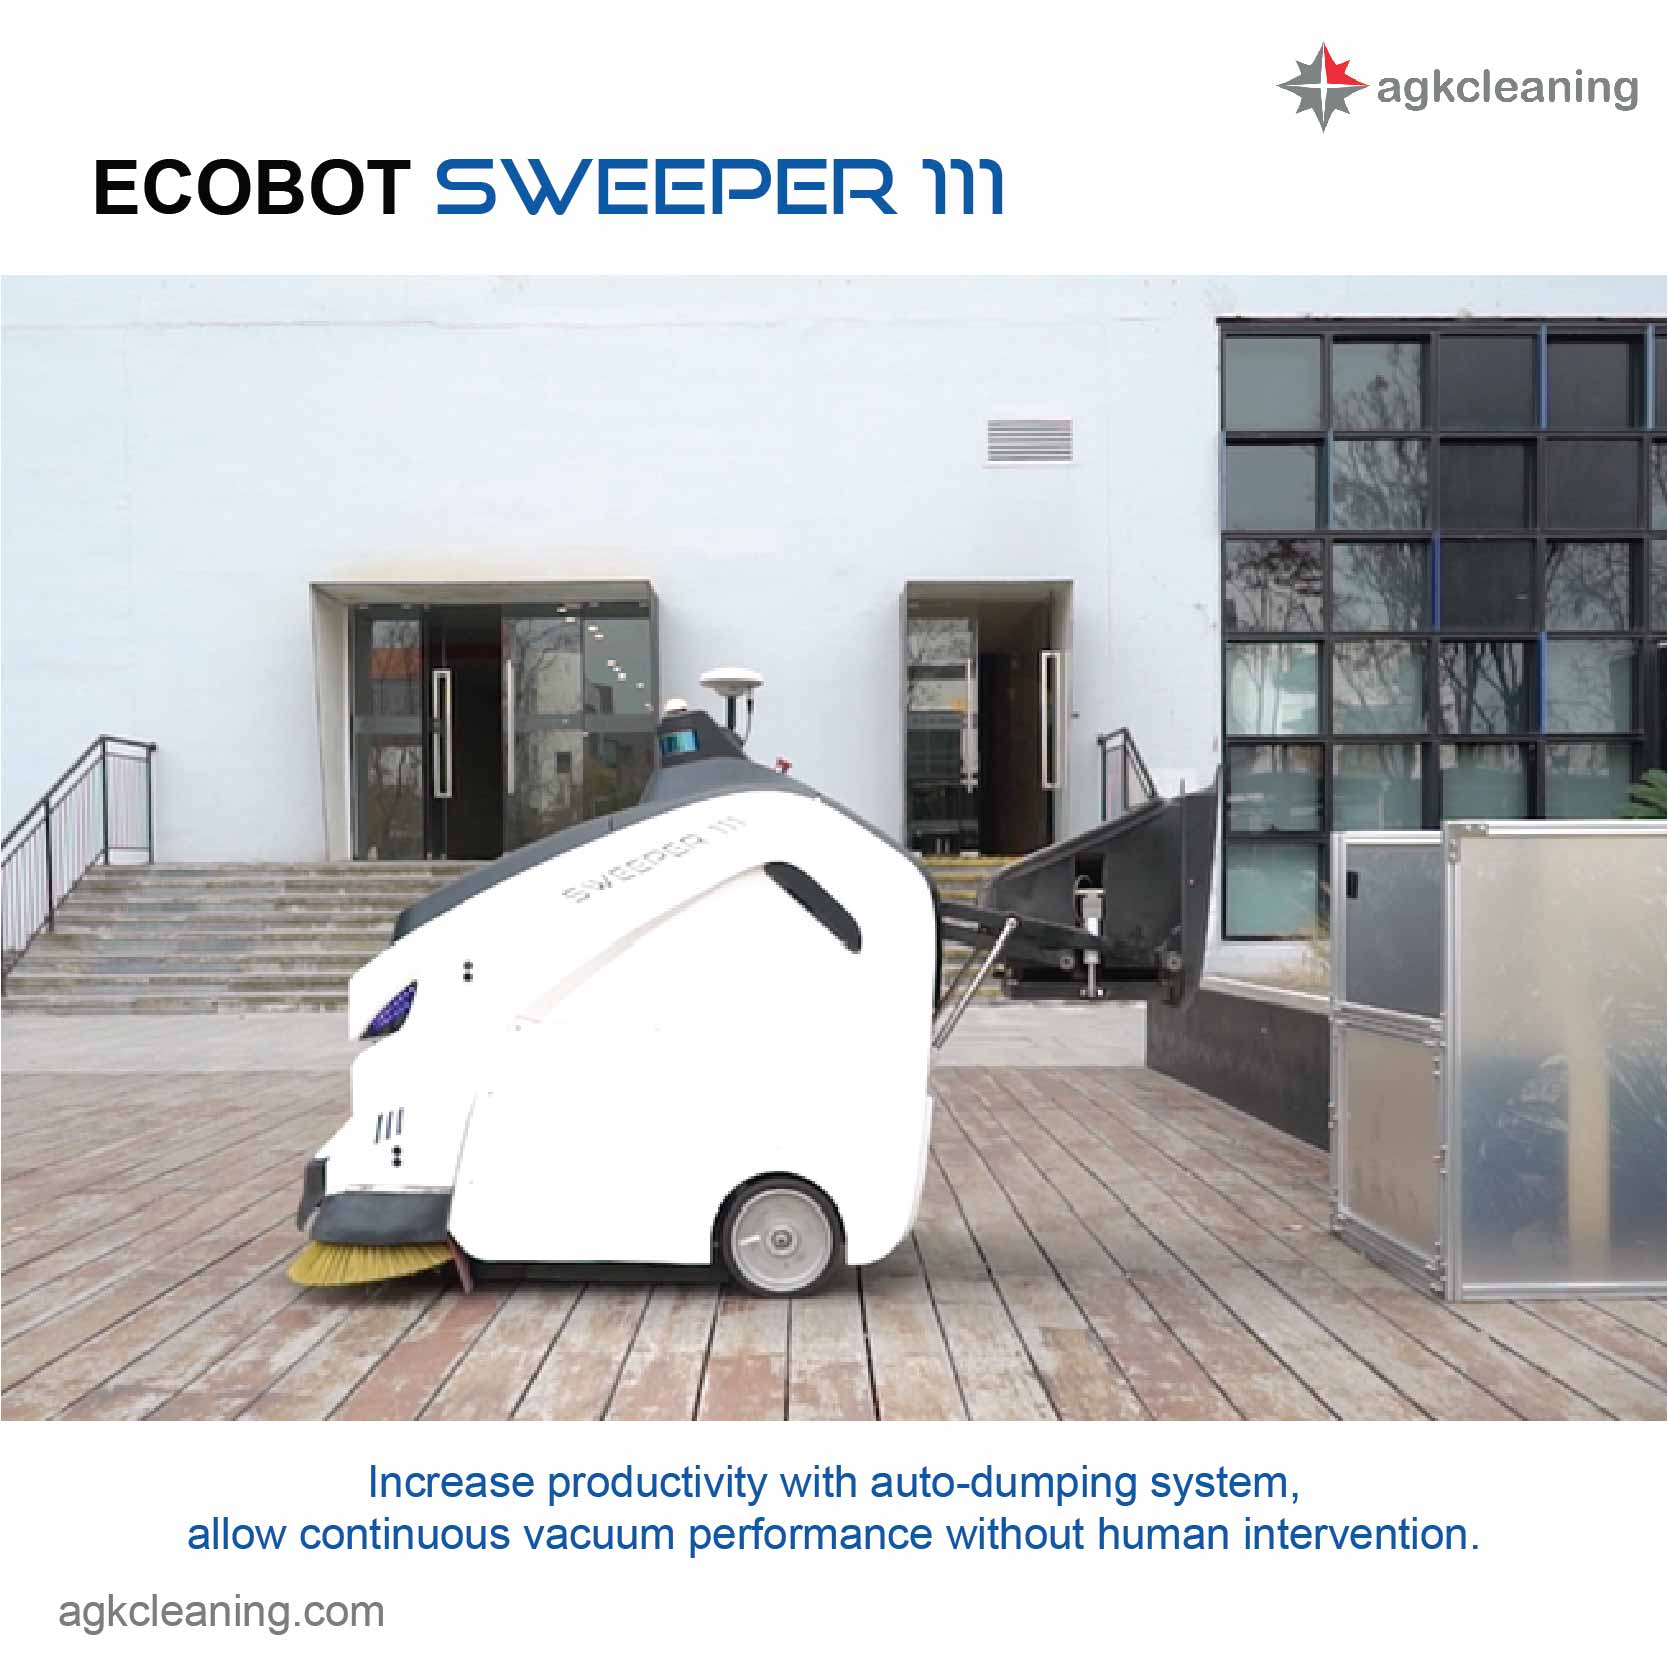 <span style='color:#000;font-size:18px;font-weight:700;'>ECOBOT SWEEPER 111</span><br><span style='color:#000;font-size:14px !important;font-weight:400!important;'>Robotic Floor Sweeper (Indoor & Outdoor)</span>